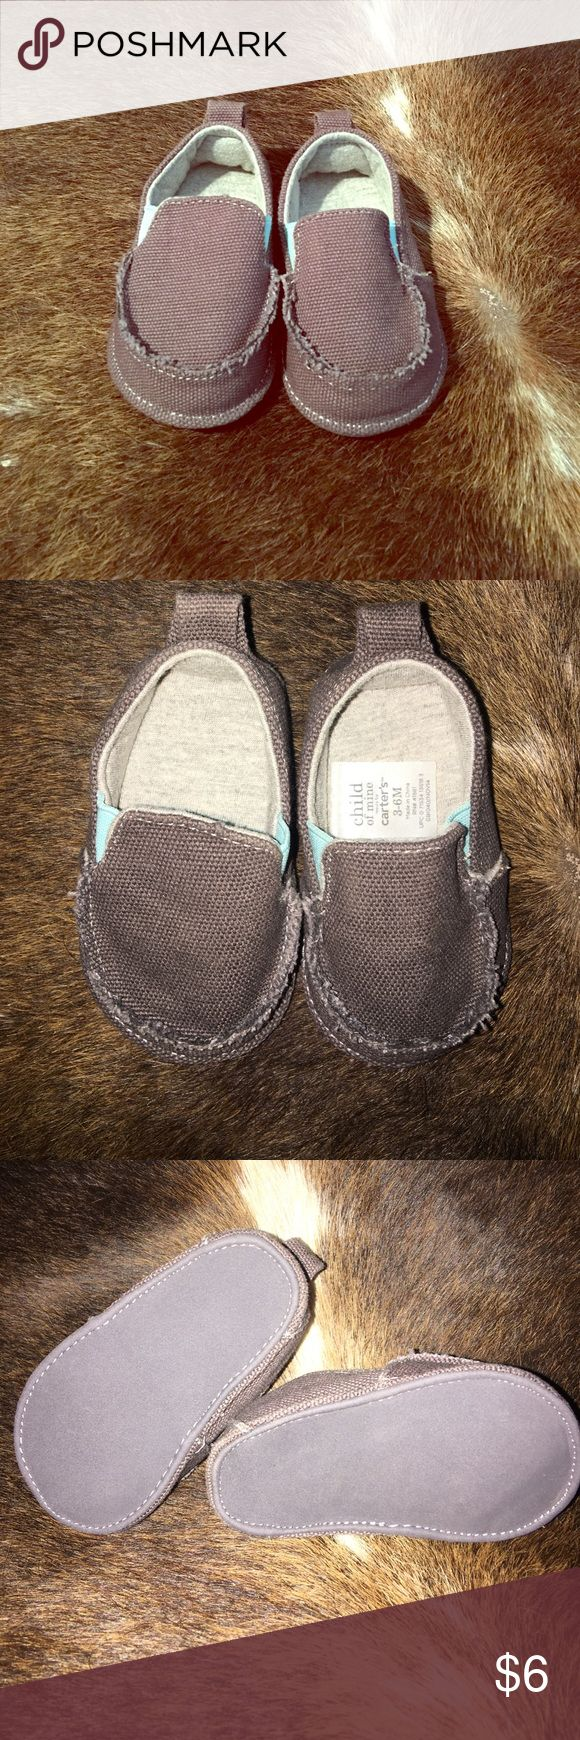 Carter baby shoes Brand new never used carter shoes for 3-6 months Carter's Shoes Baby & Walker